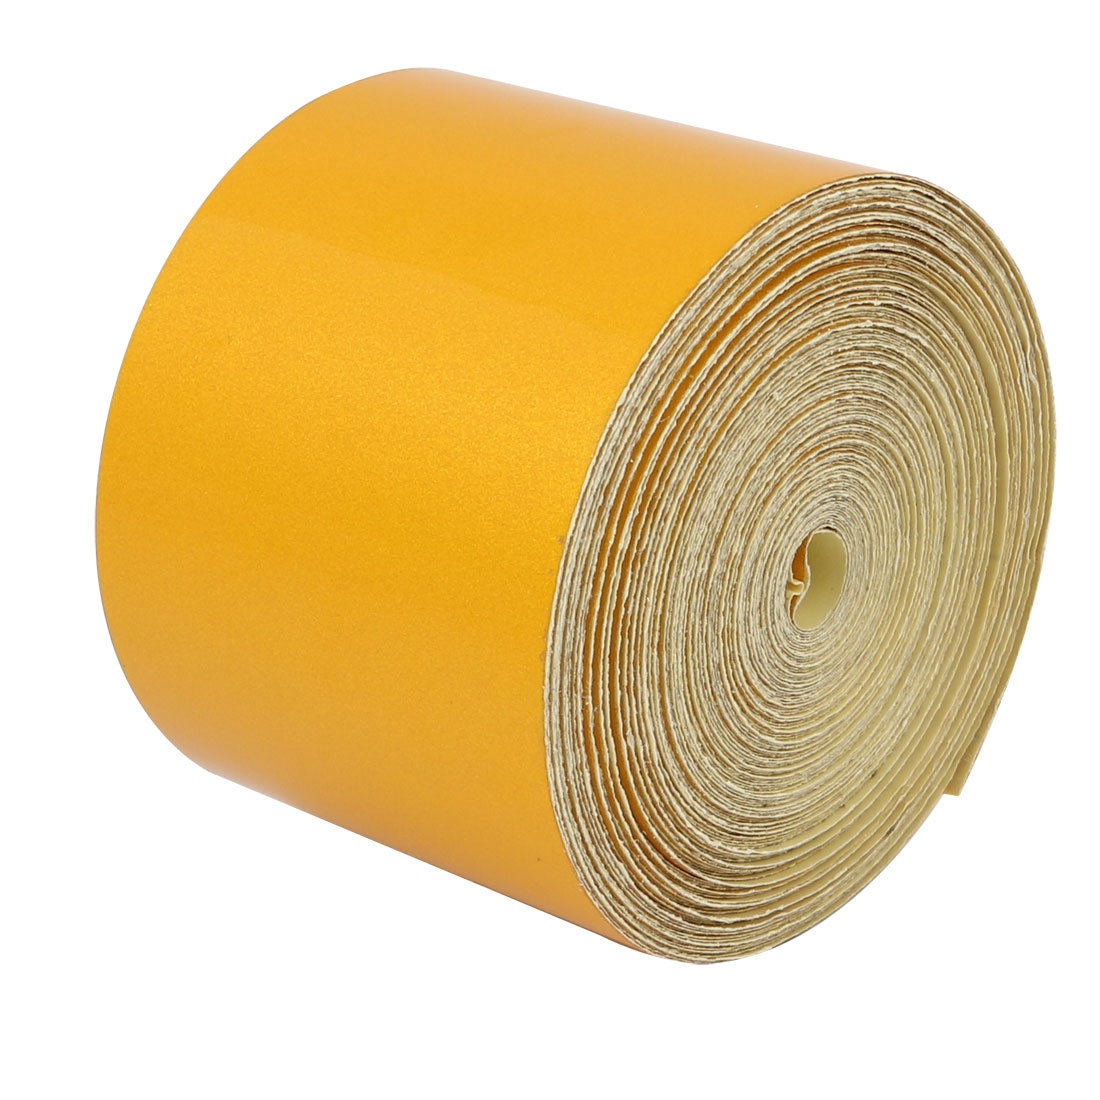 5cm Wide 15 Meters Long Single Sided Adhesive Reflective Warning Tape Yellow